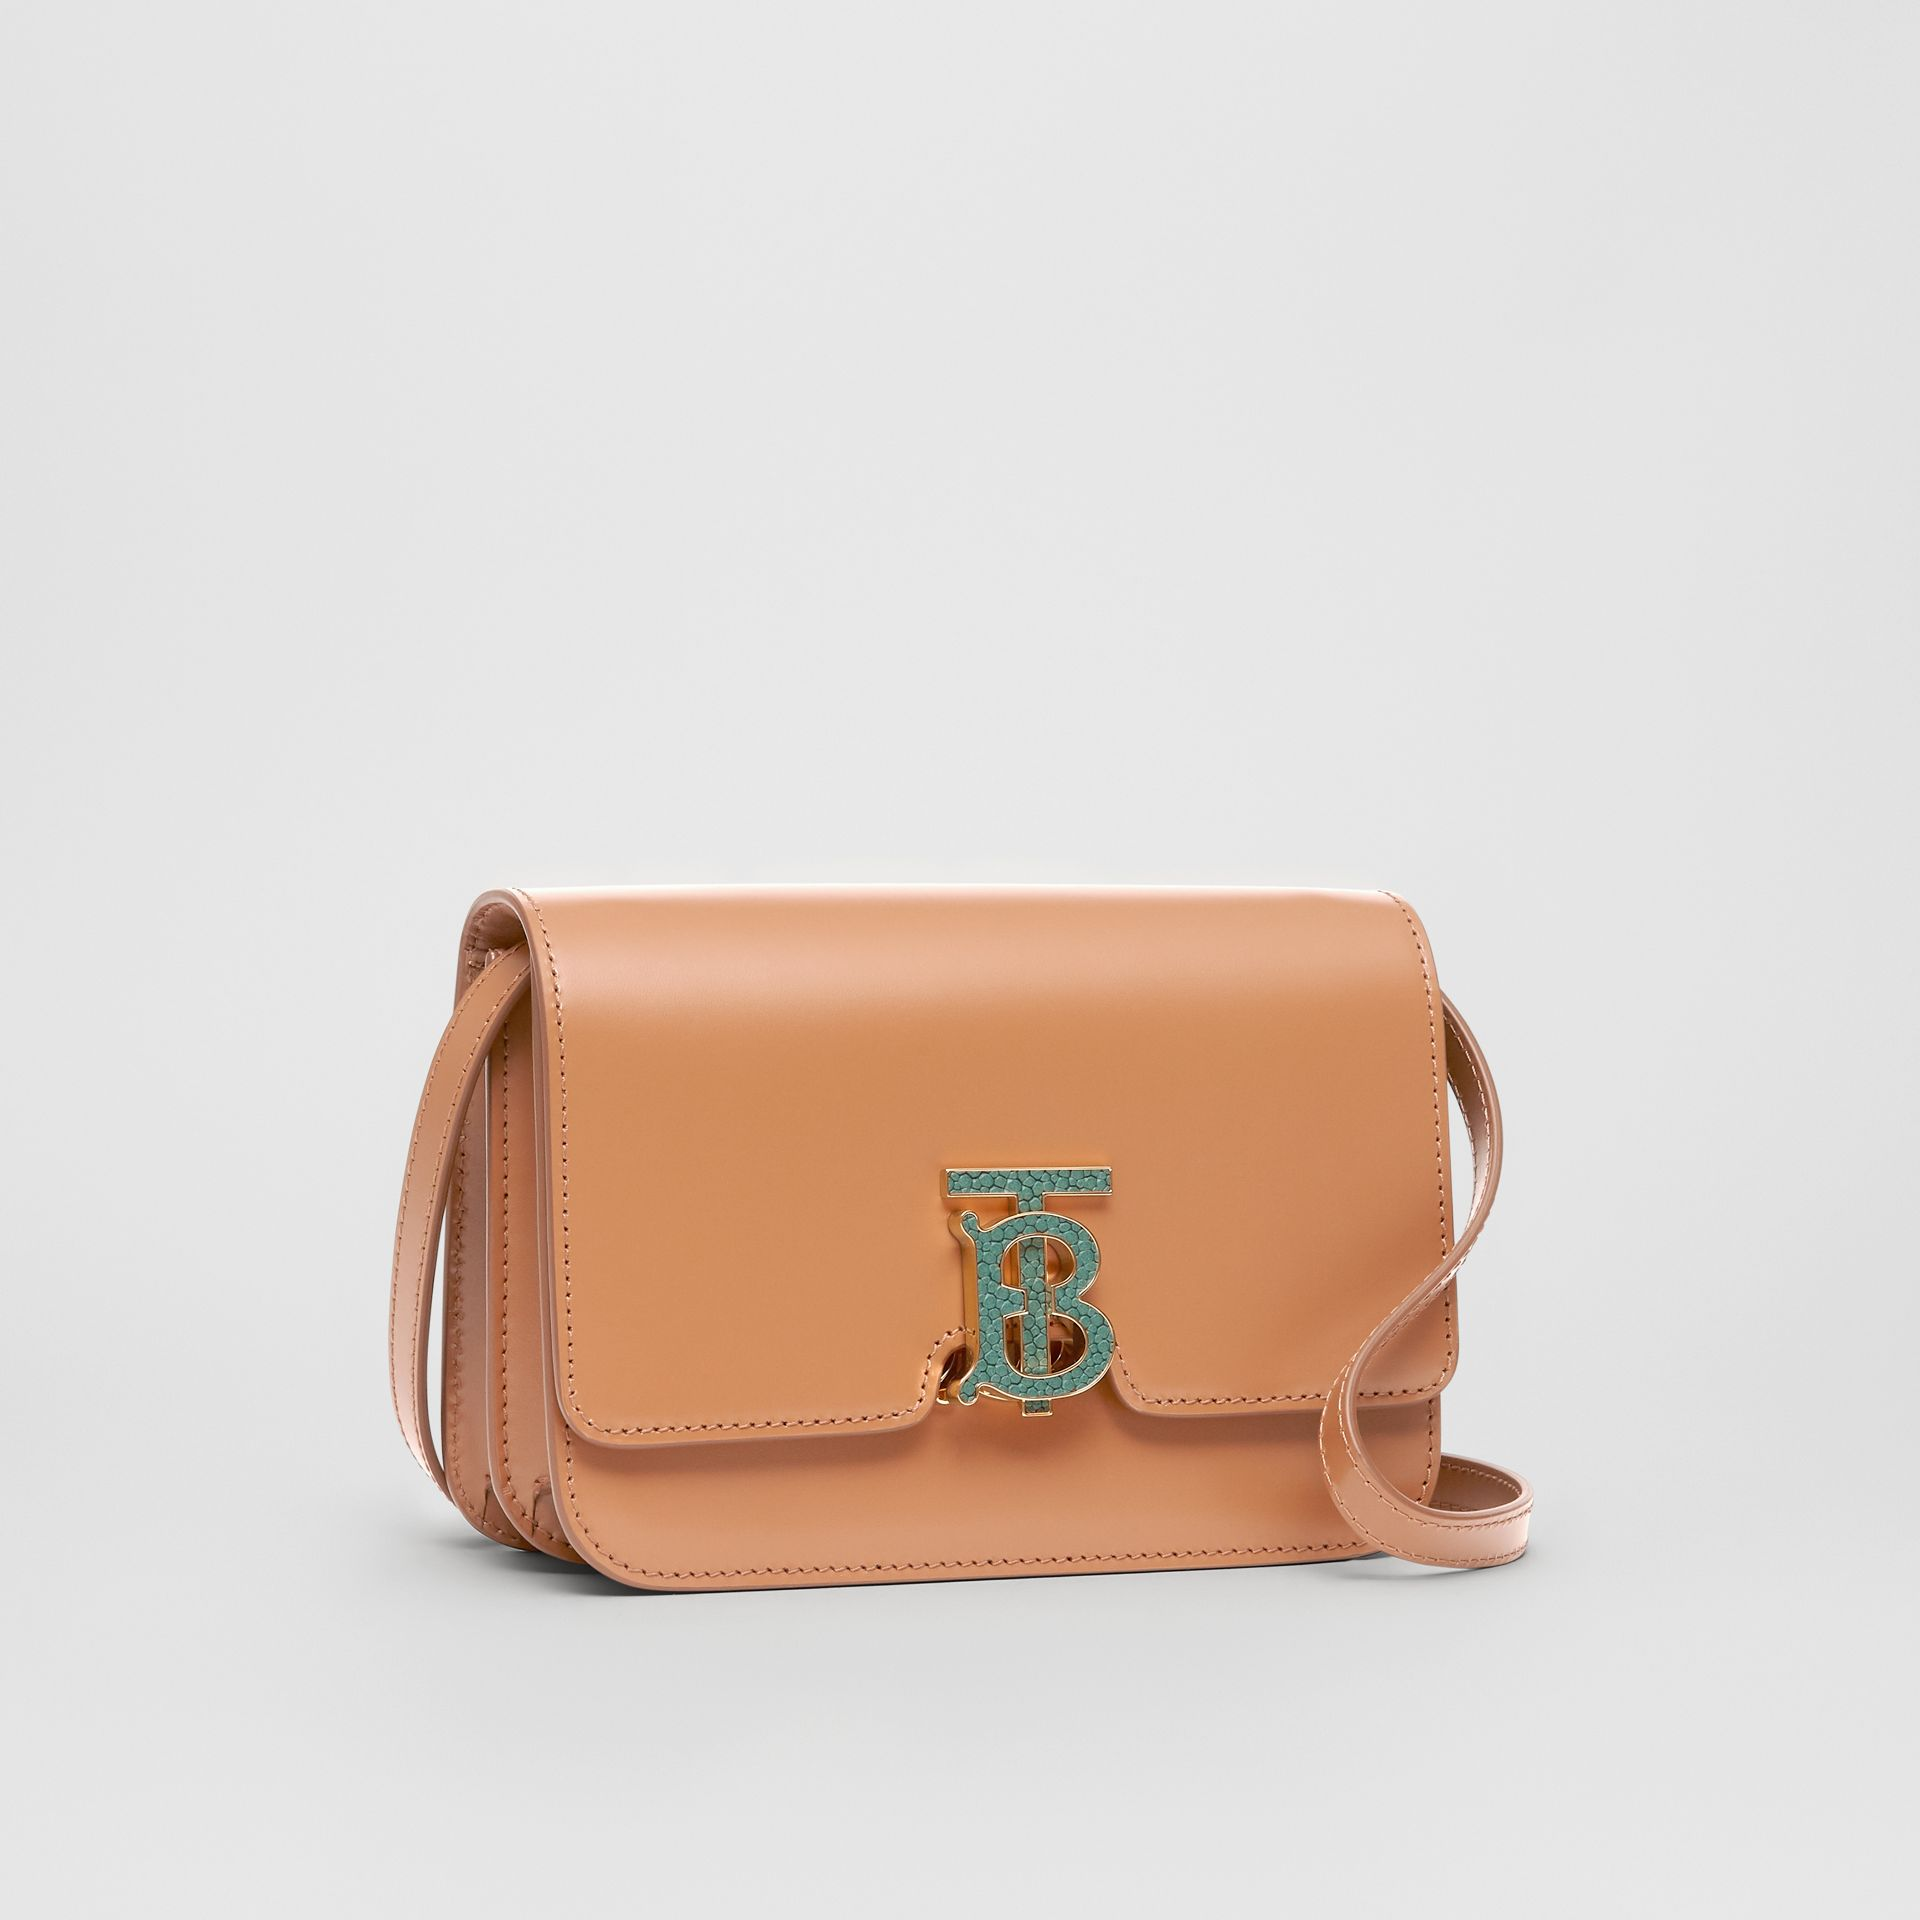 Small Leather TB Bag in Flaxseed - Women | Burberry - gallery image 6